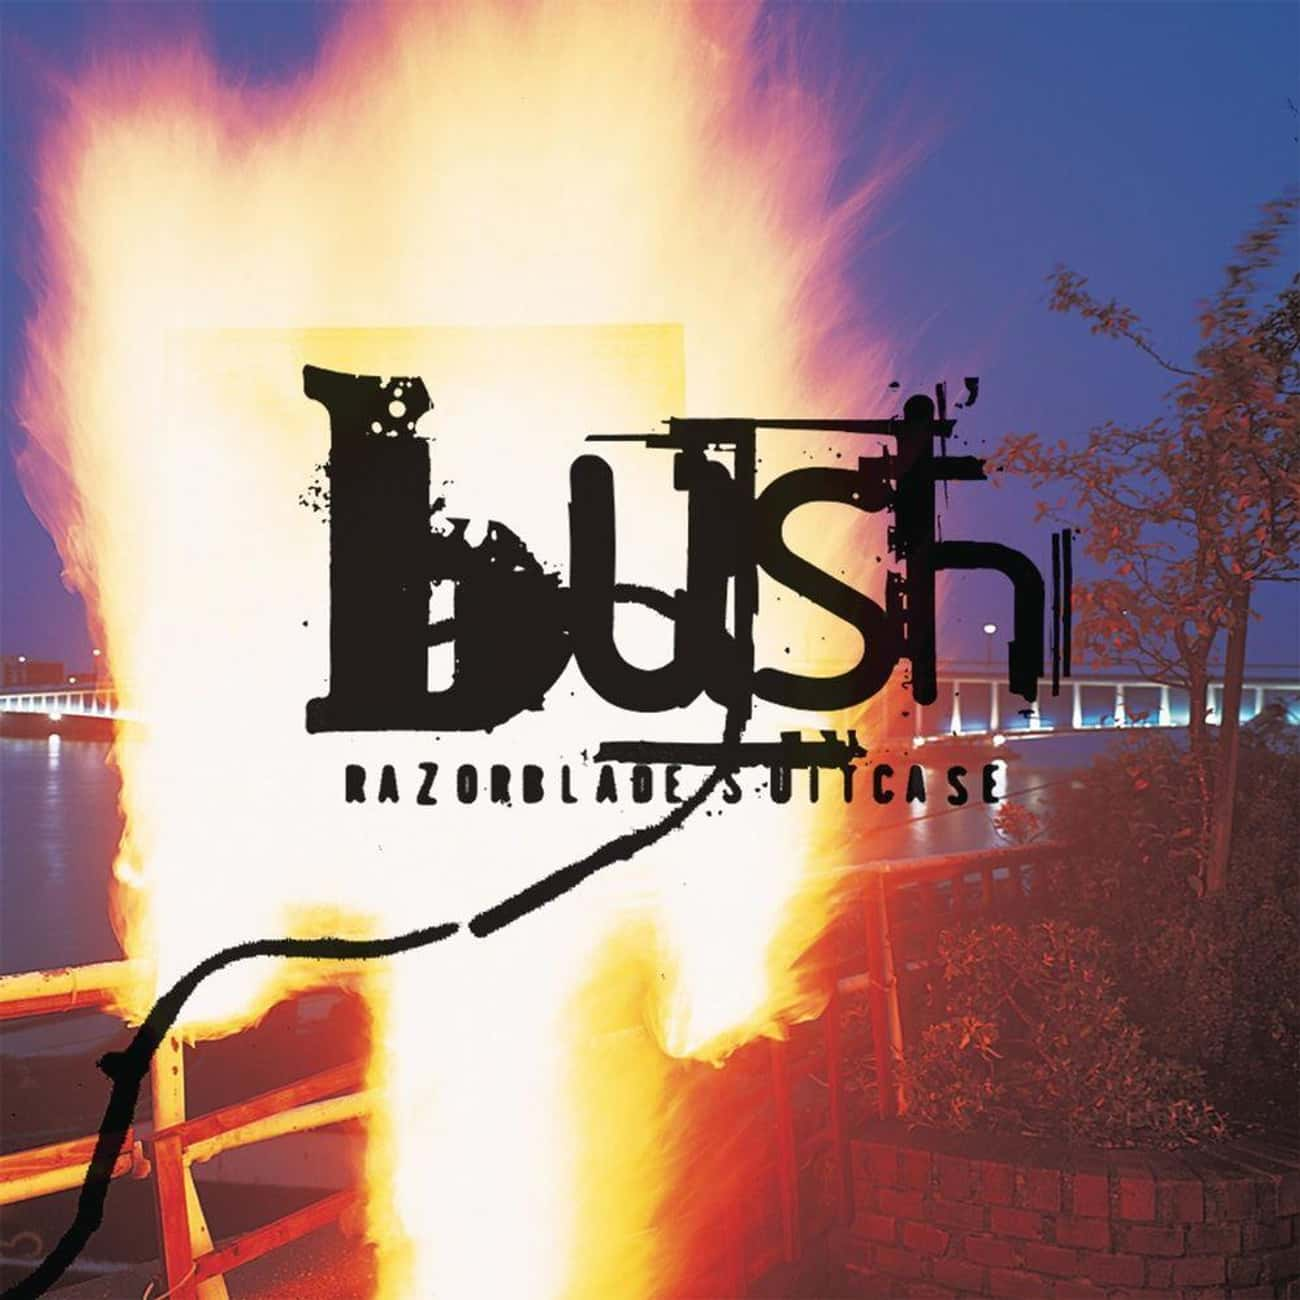 Razorblade Suitcase is listed (or ranked) 2 on the list The Best Bush Albums of All Time